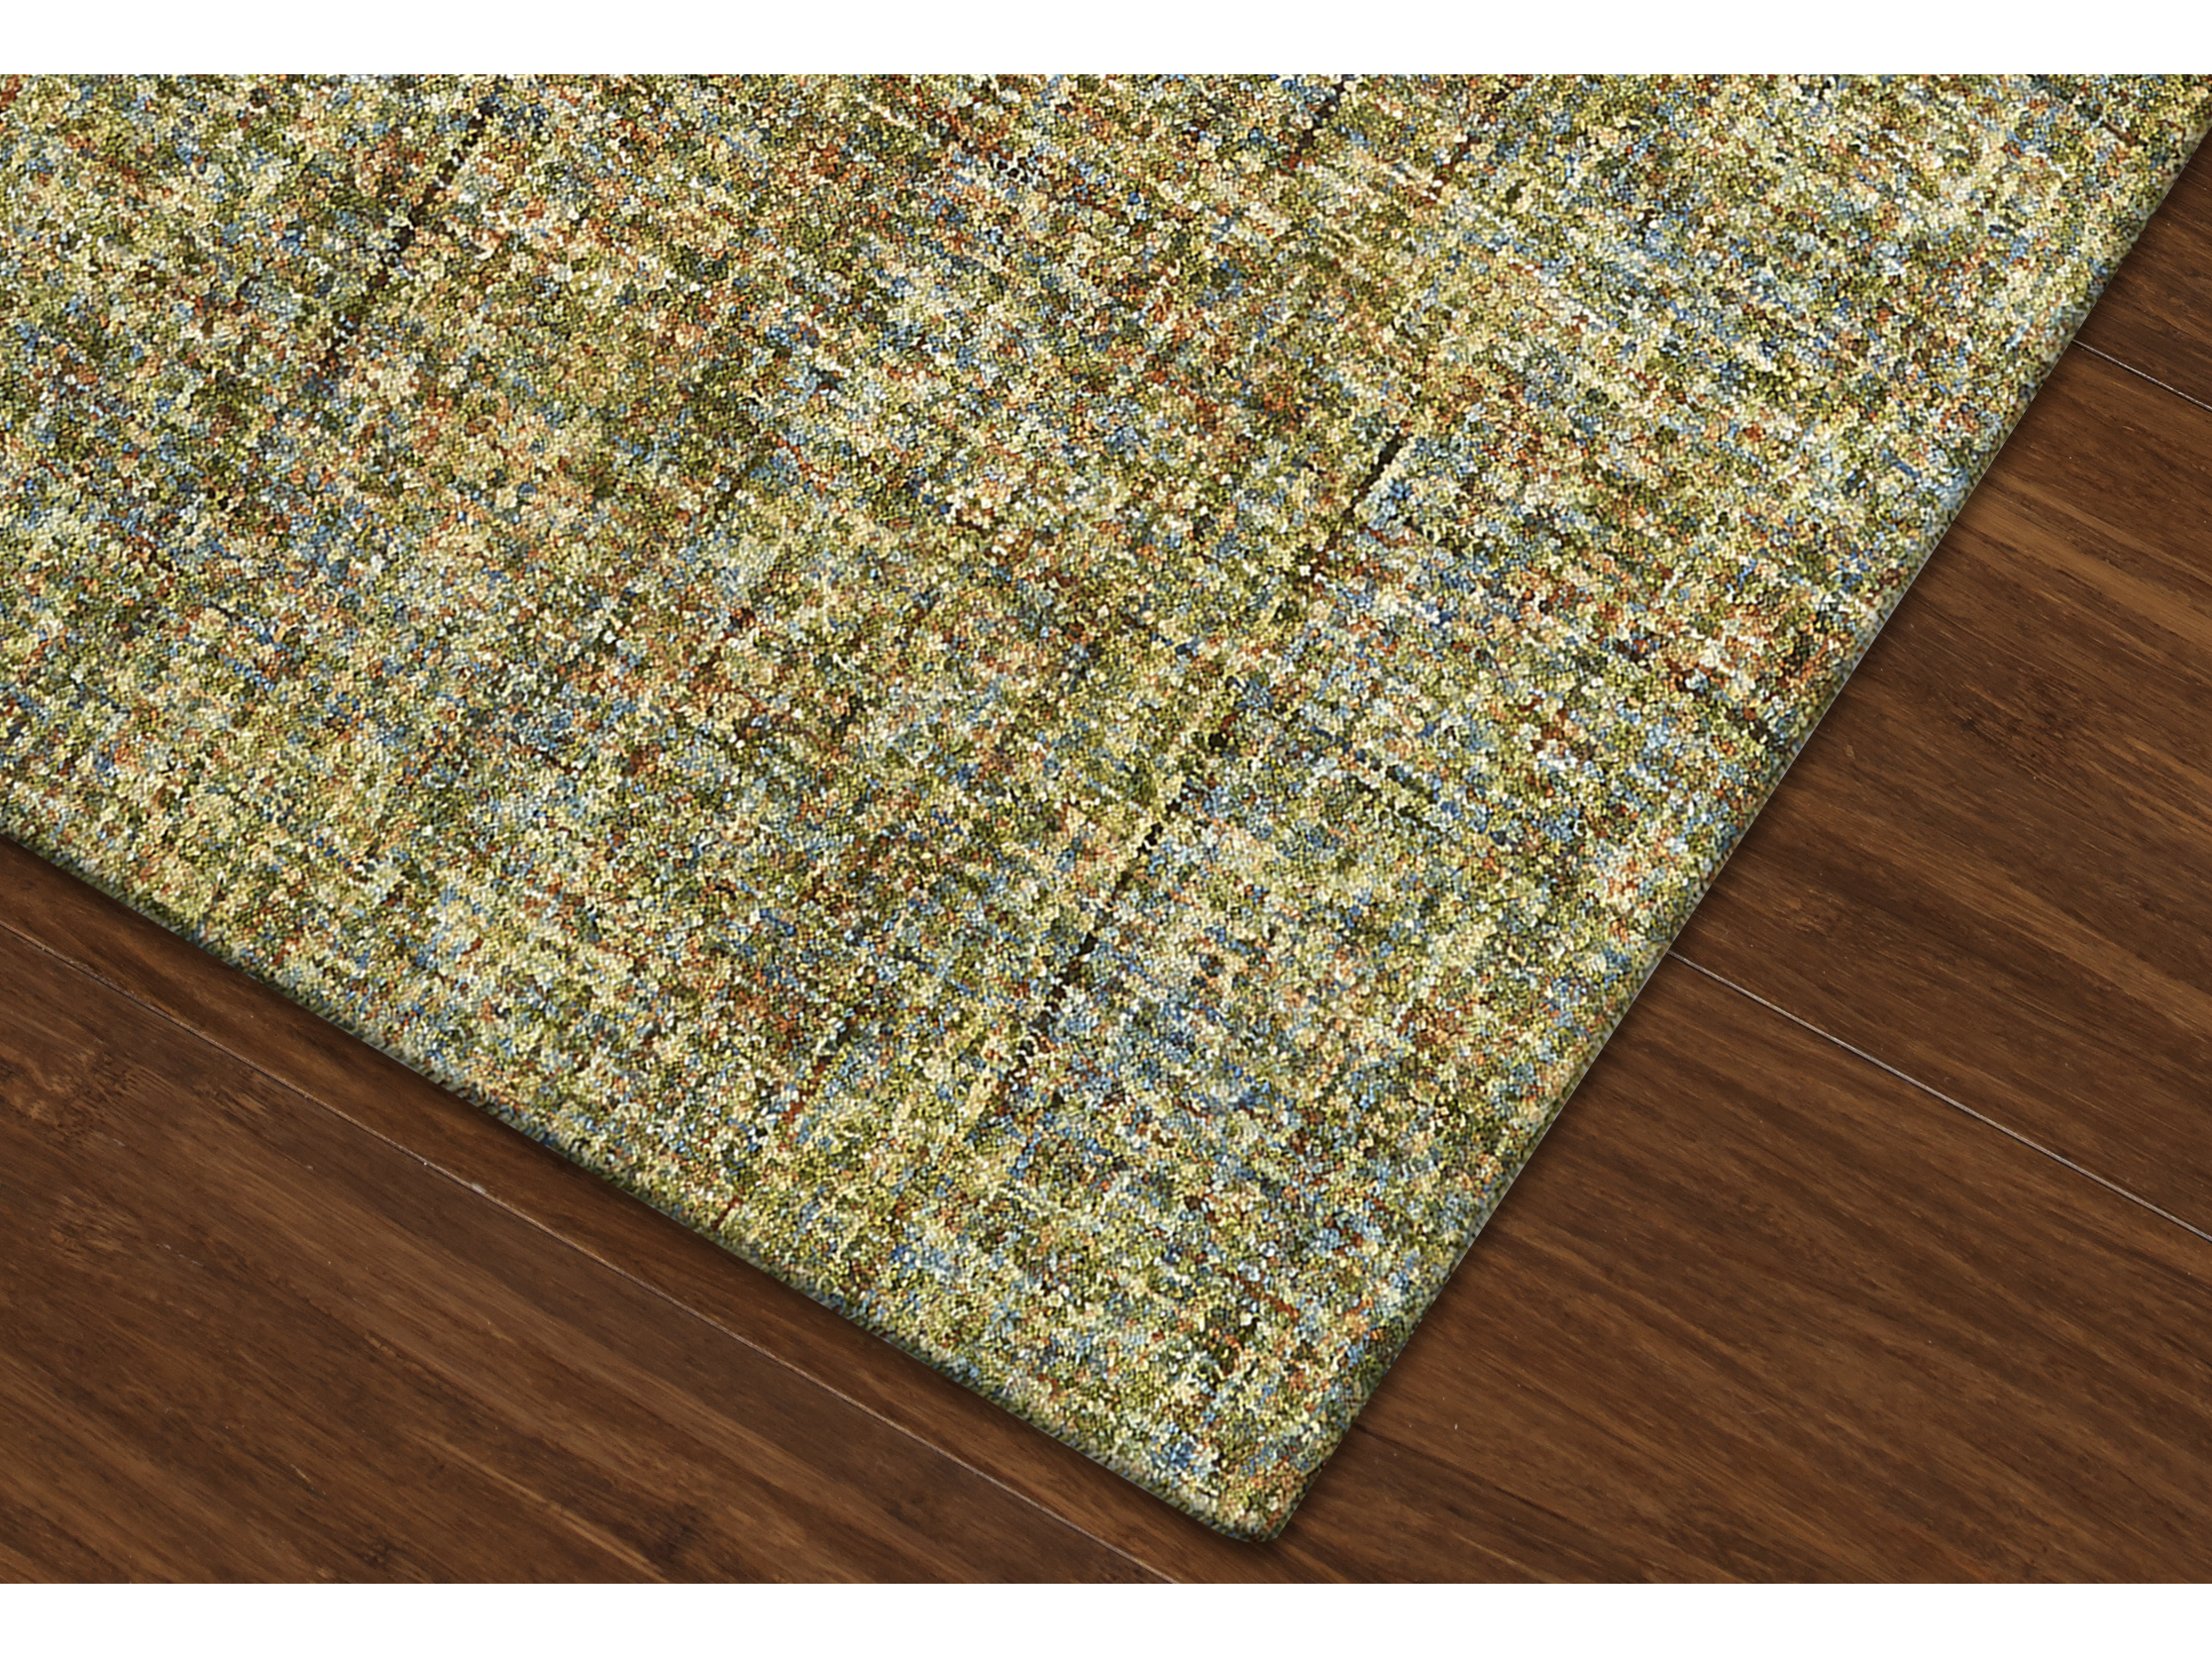 Dalyn Calisa Meadow Rectangular Area Rug Cs5 Meadow